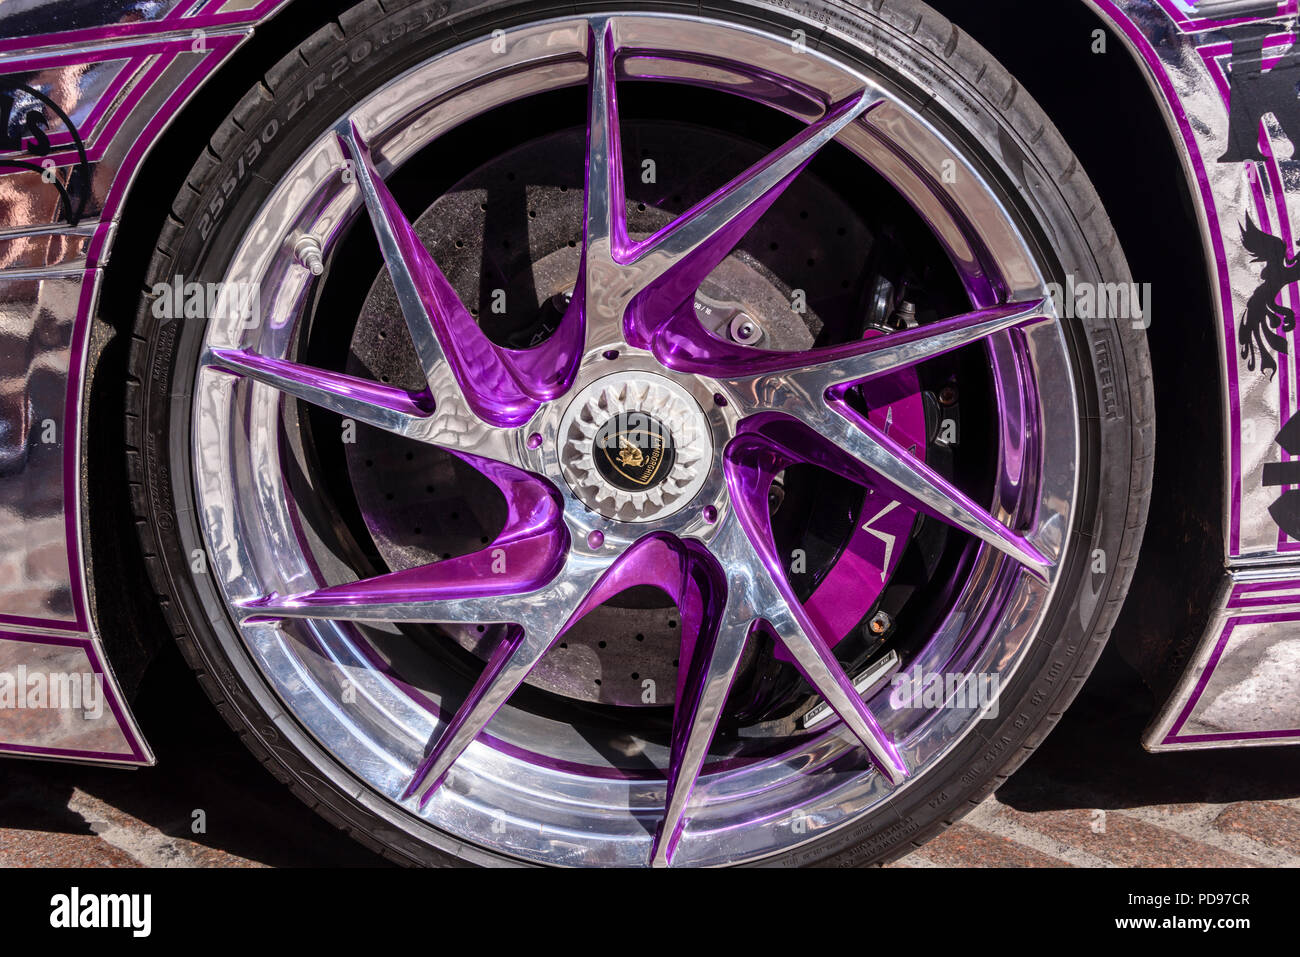 Chrome And Purple Wheel On T Chrome Plated Lamborghini Aventador